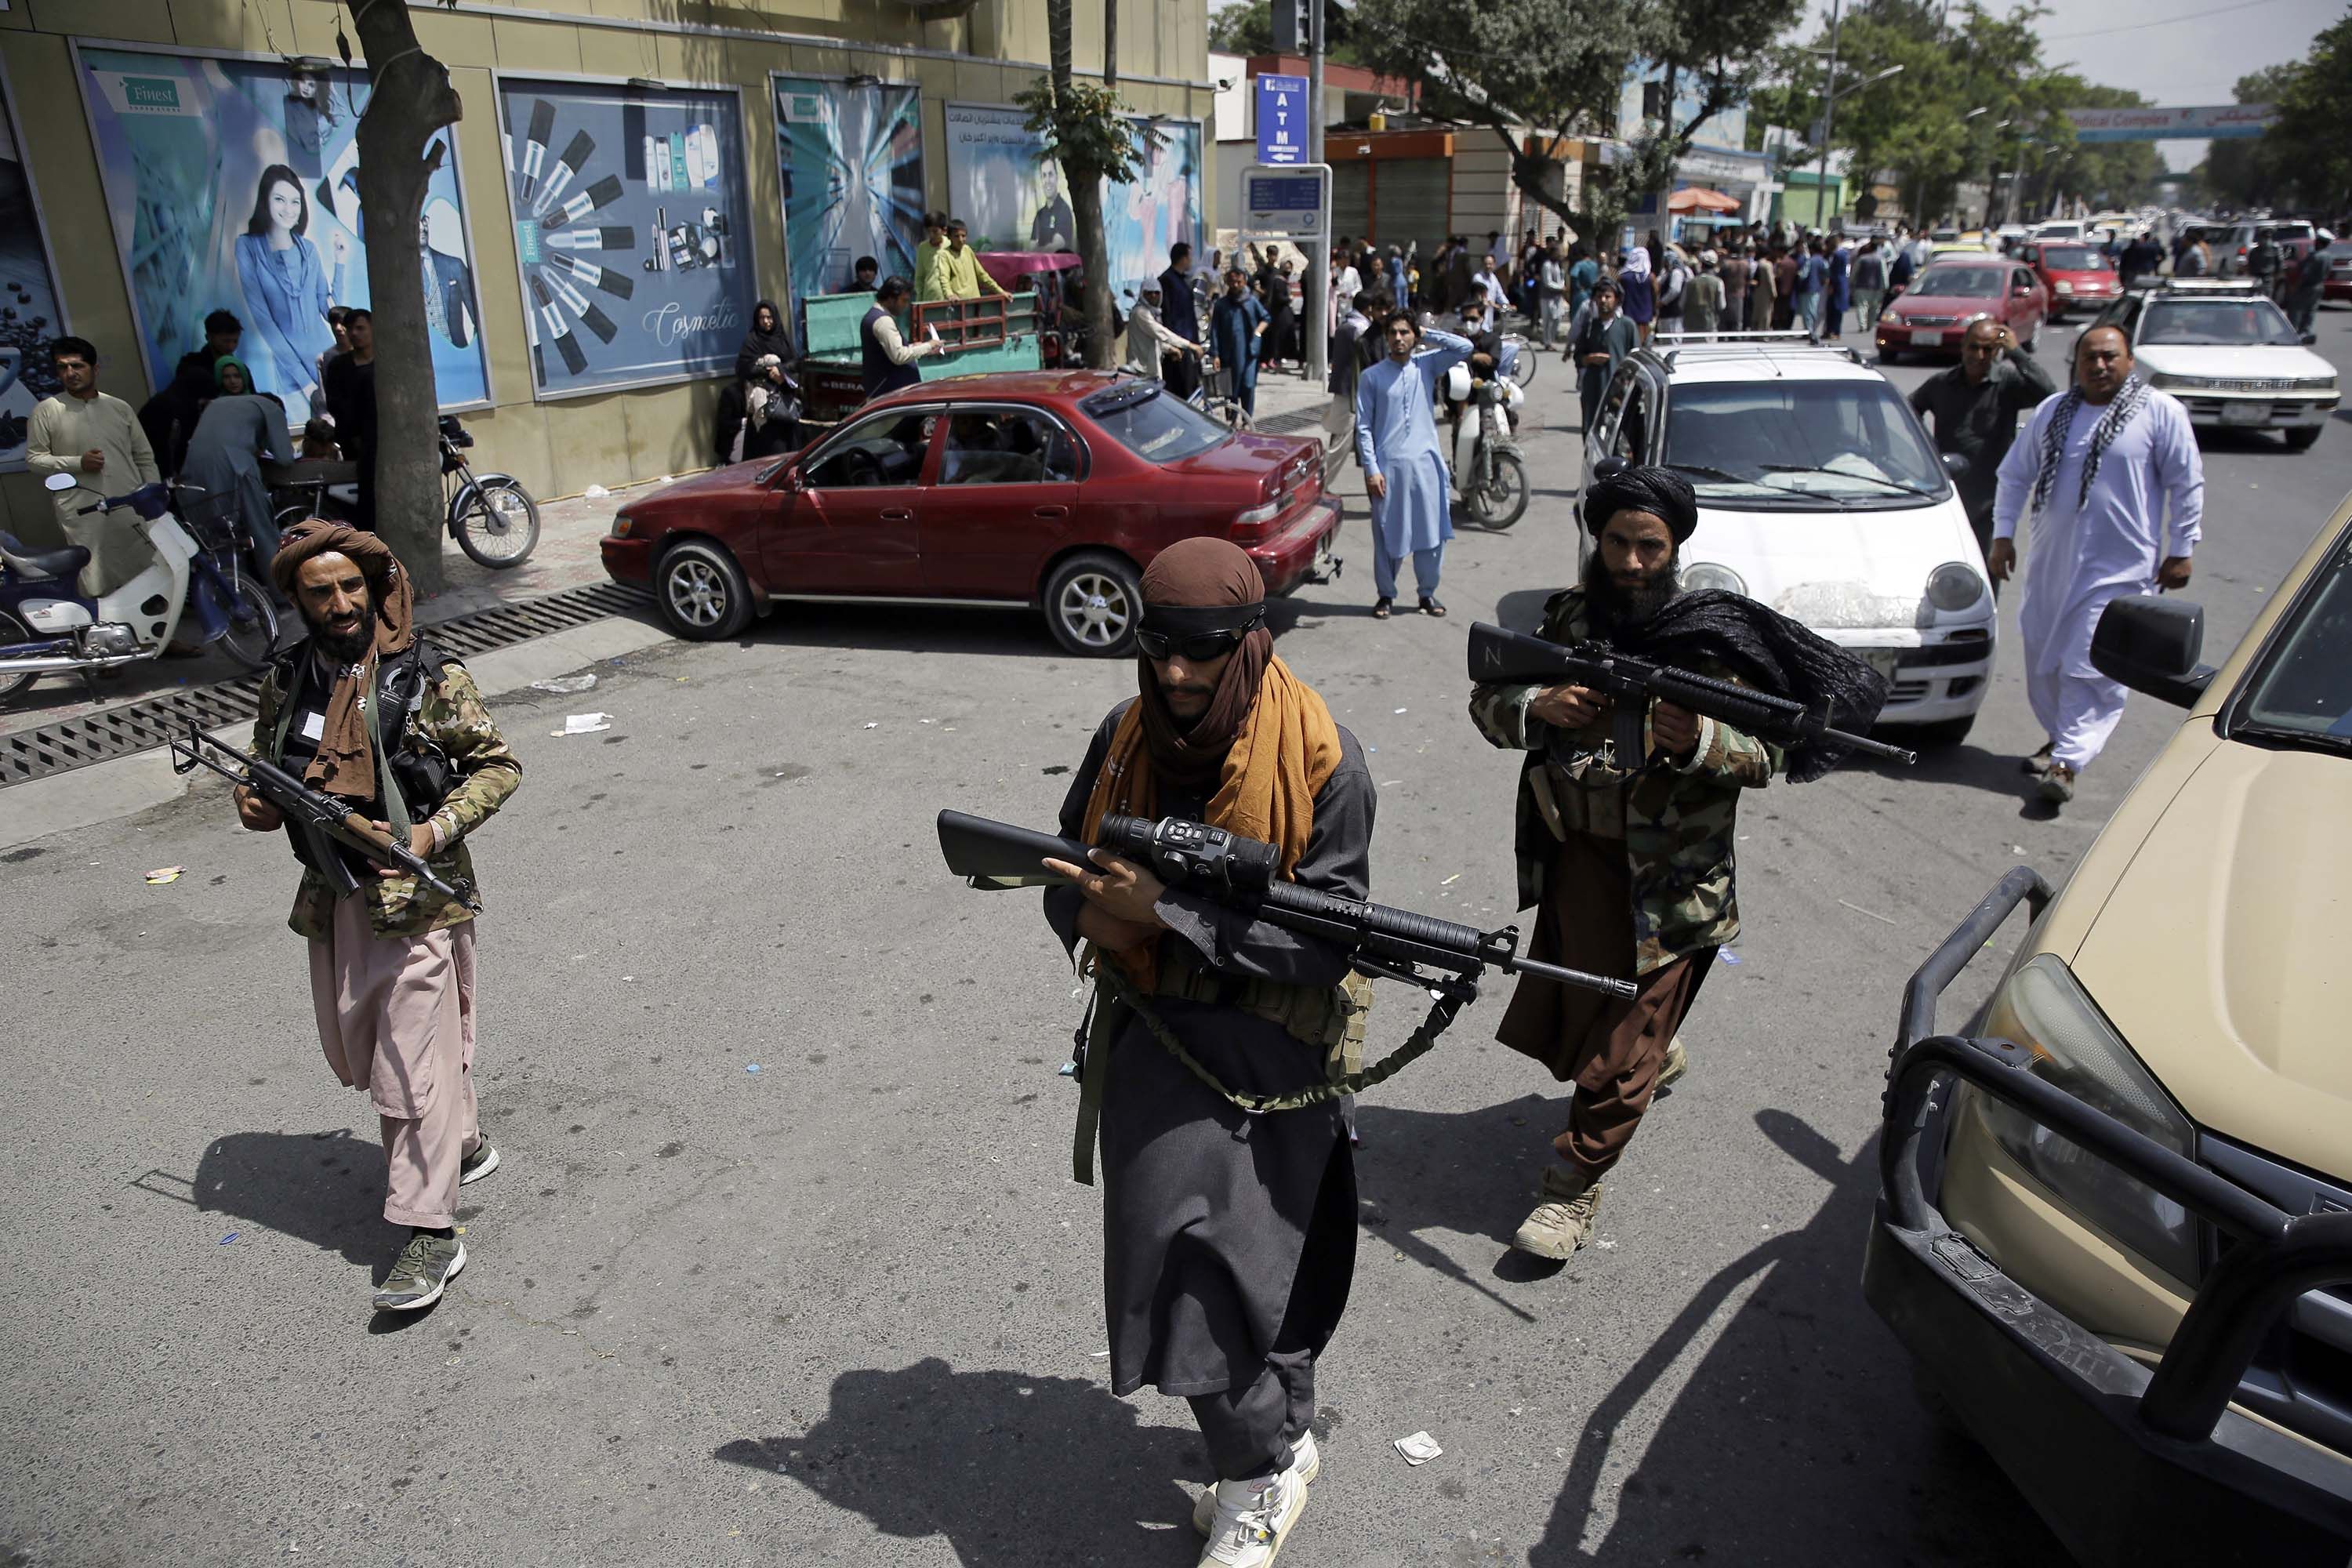 Taliban fighters patrol in Kabul, Afghanistan, on Thursday, August 19.